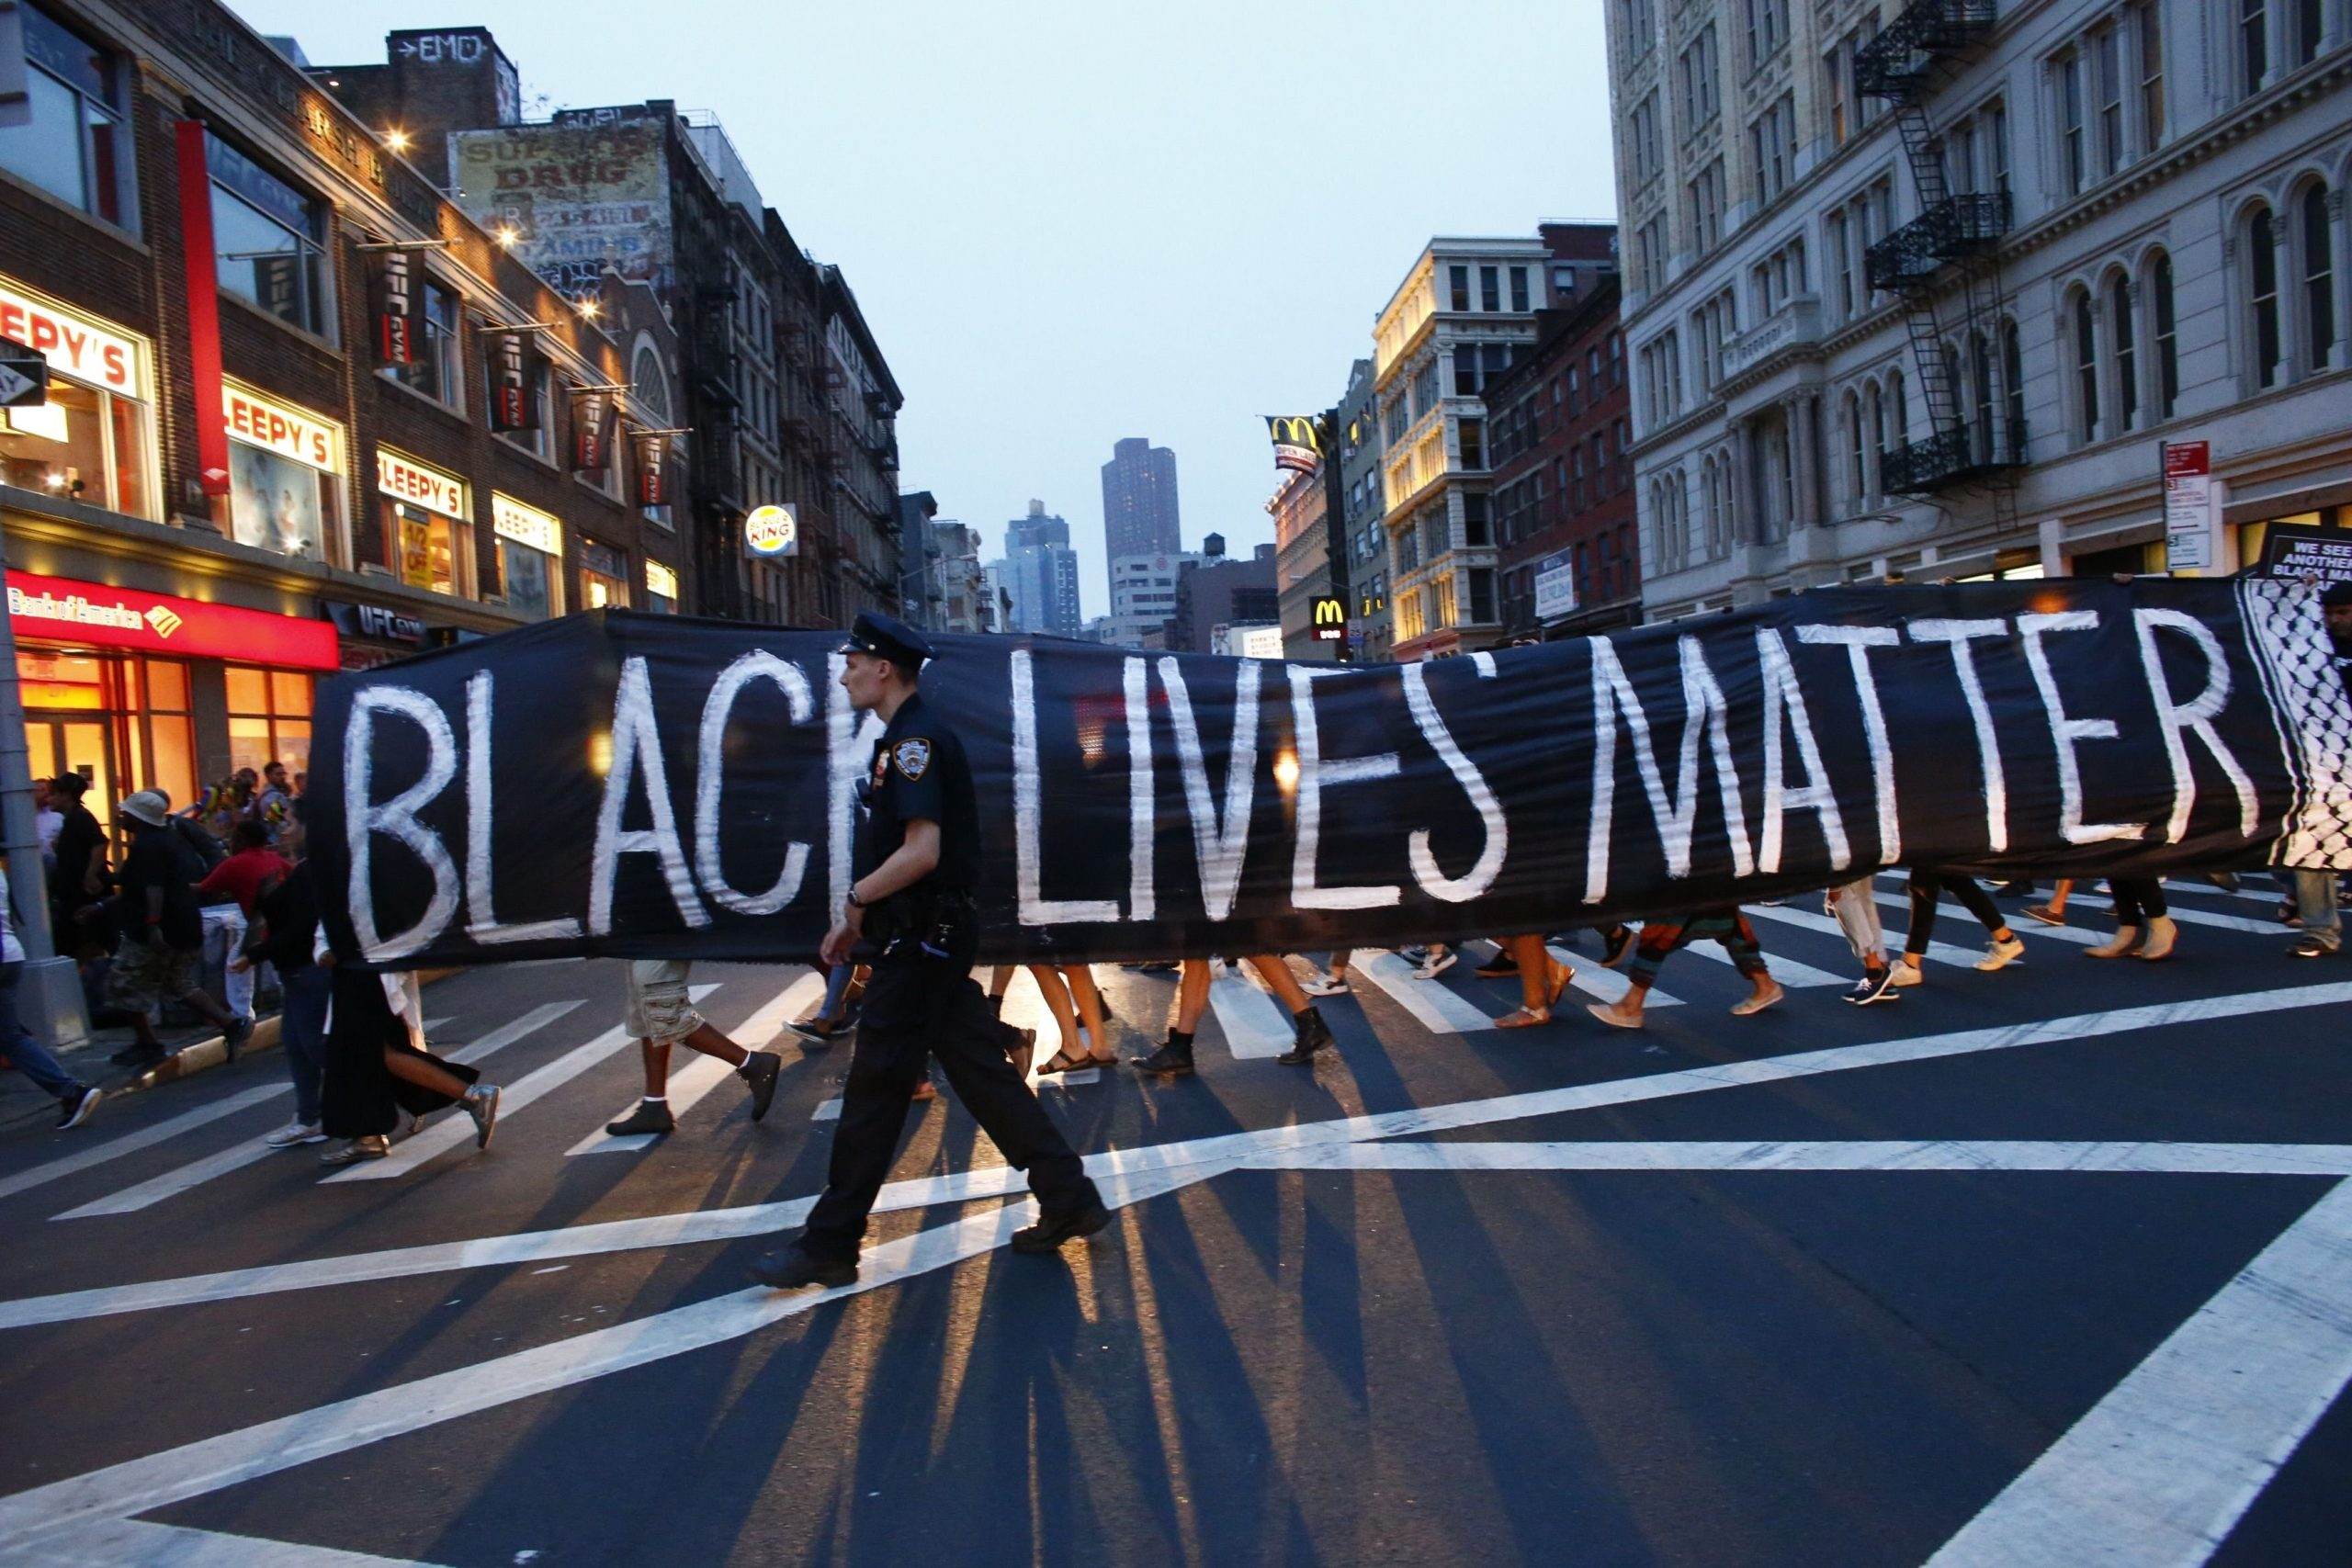 Network for Good's Commitment to Fighting Racial Inequality